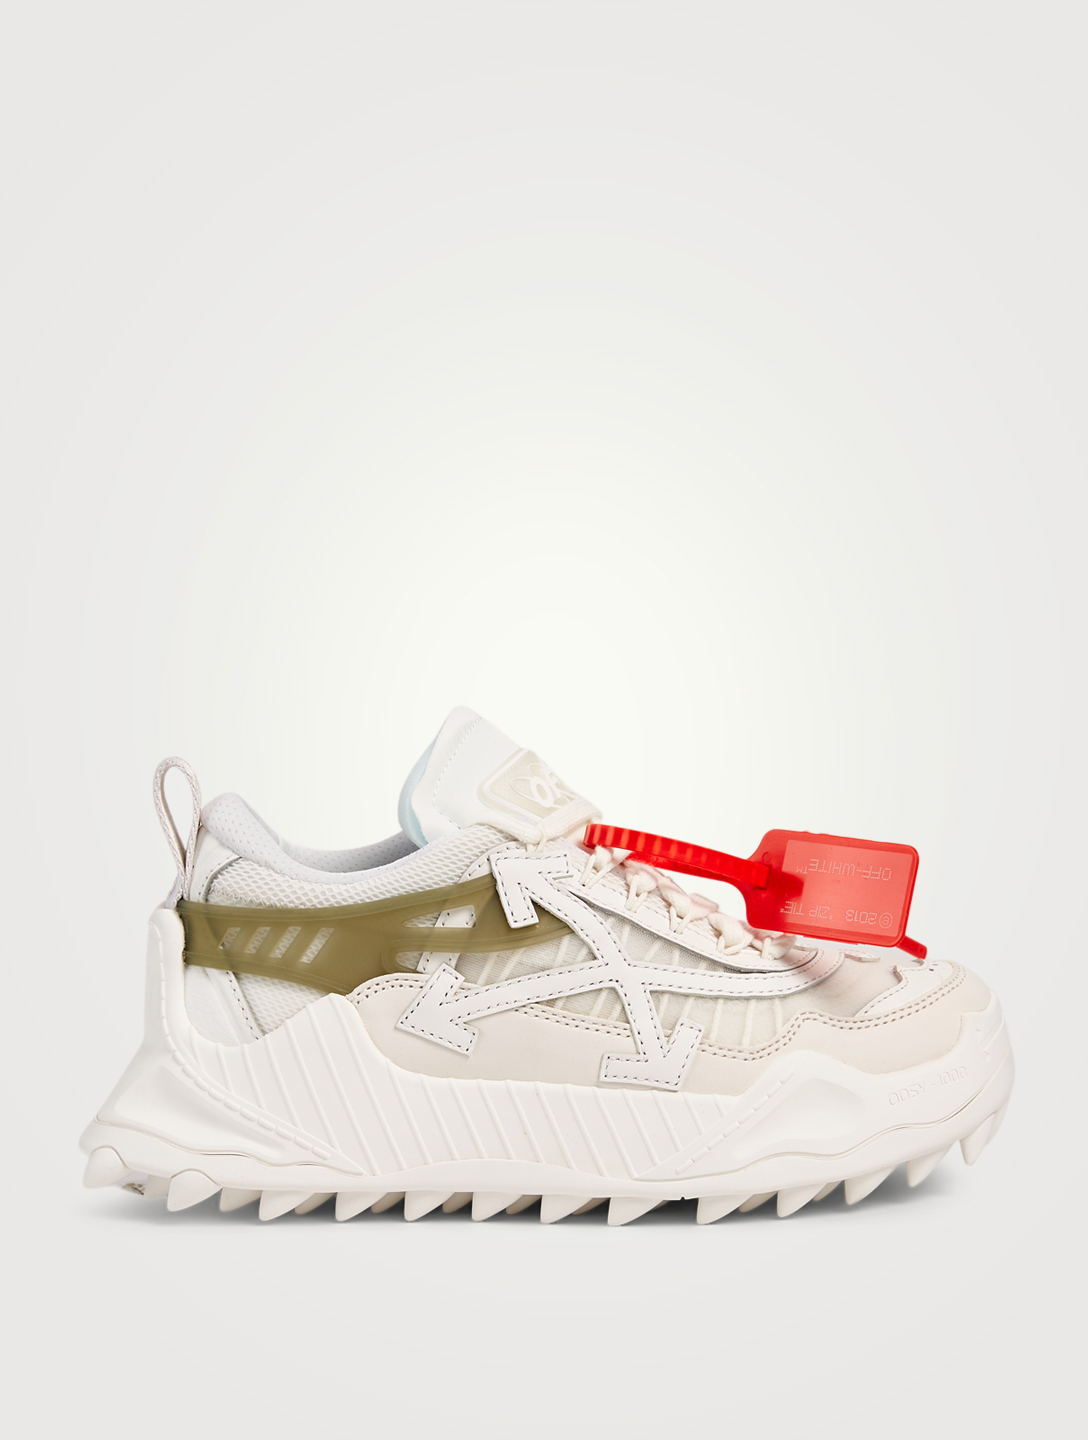 OFF-WHITE Sneakers ODSY-1000 Femmes Blanc